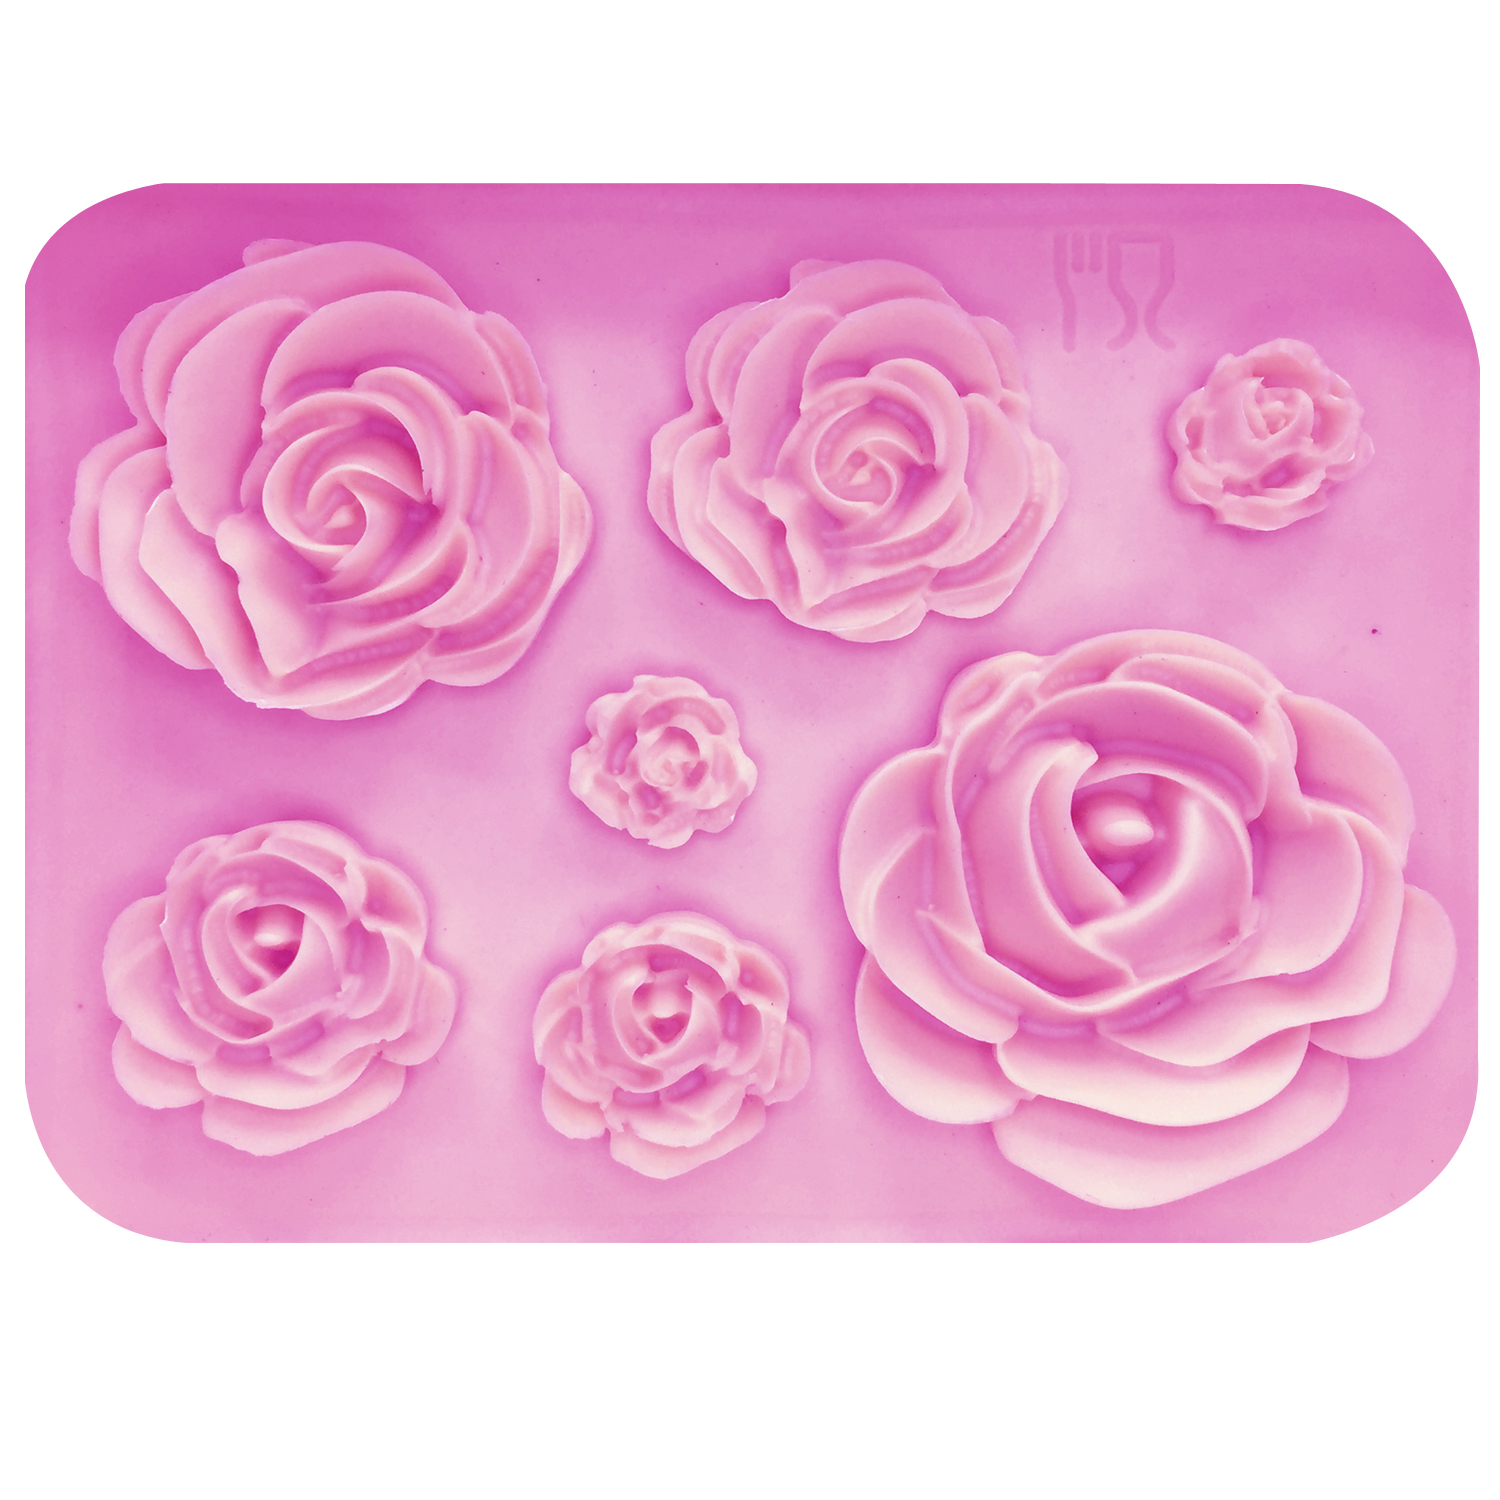 M1023 Rose Flowers Silicone Mold Cake Chocolate Mold Wedding Cake Decorating Tools Fondant Sugarcraft Cake Mold(China)